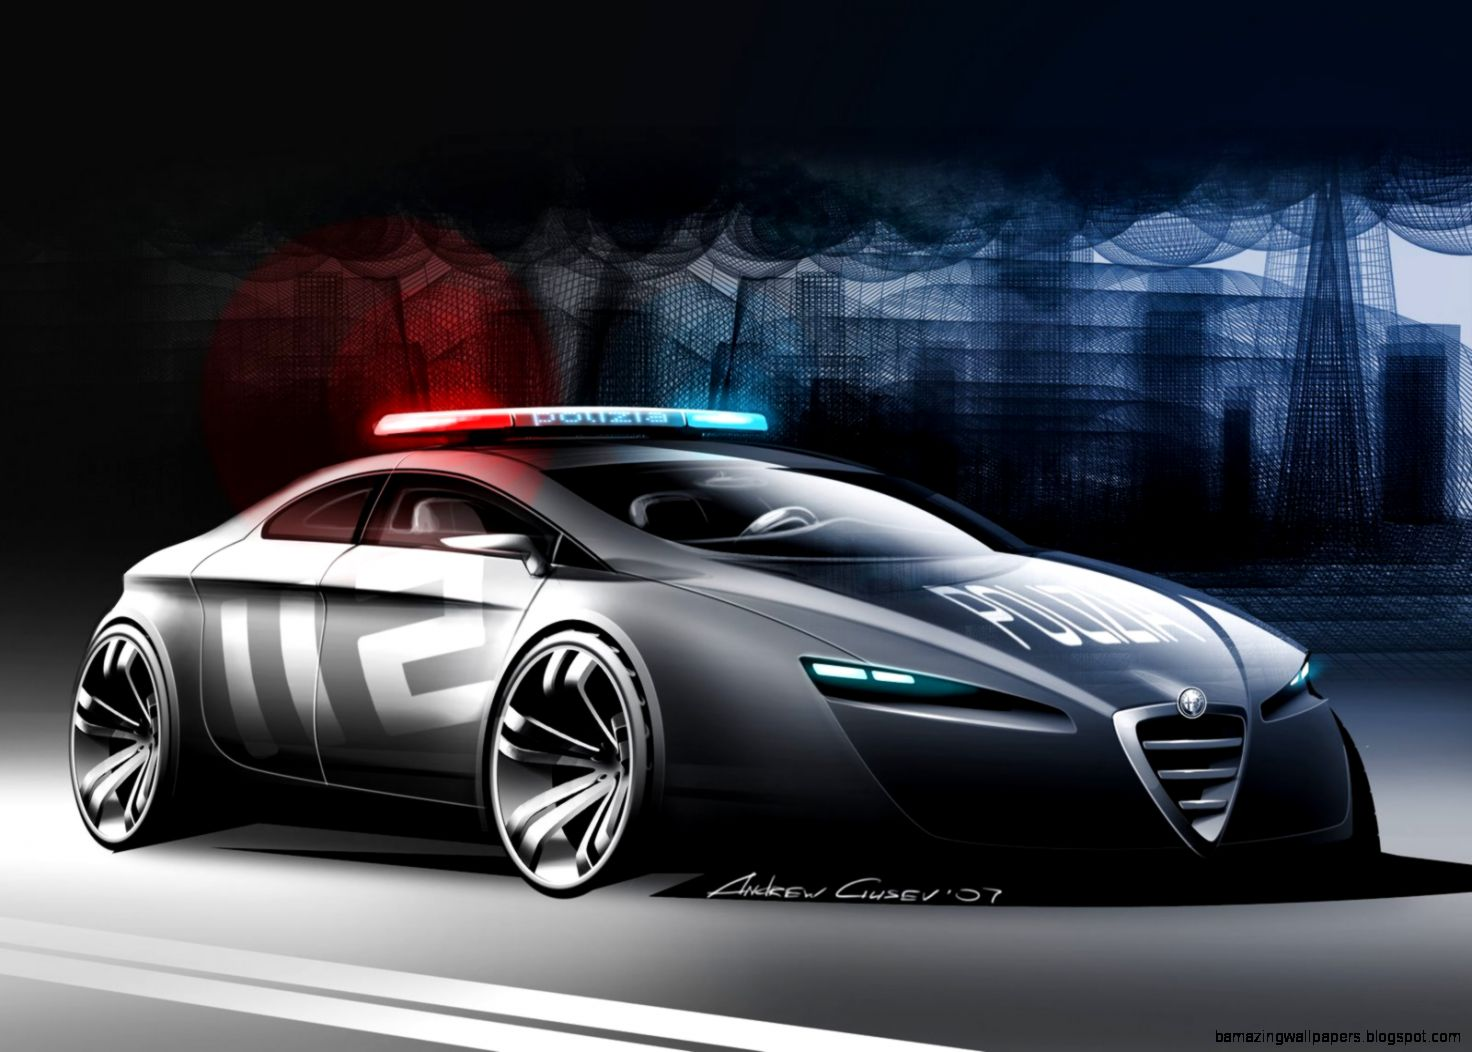 Cool american police cars amazing wallpapers